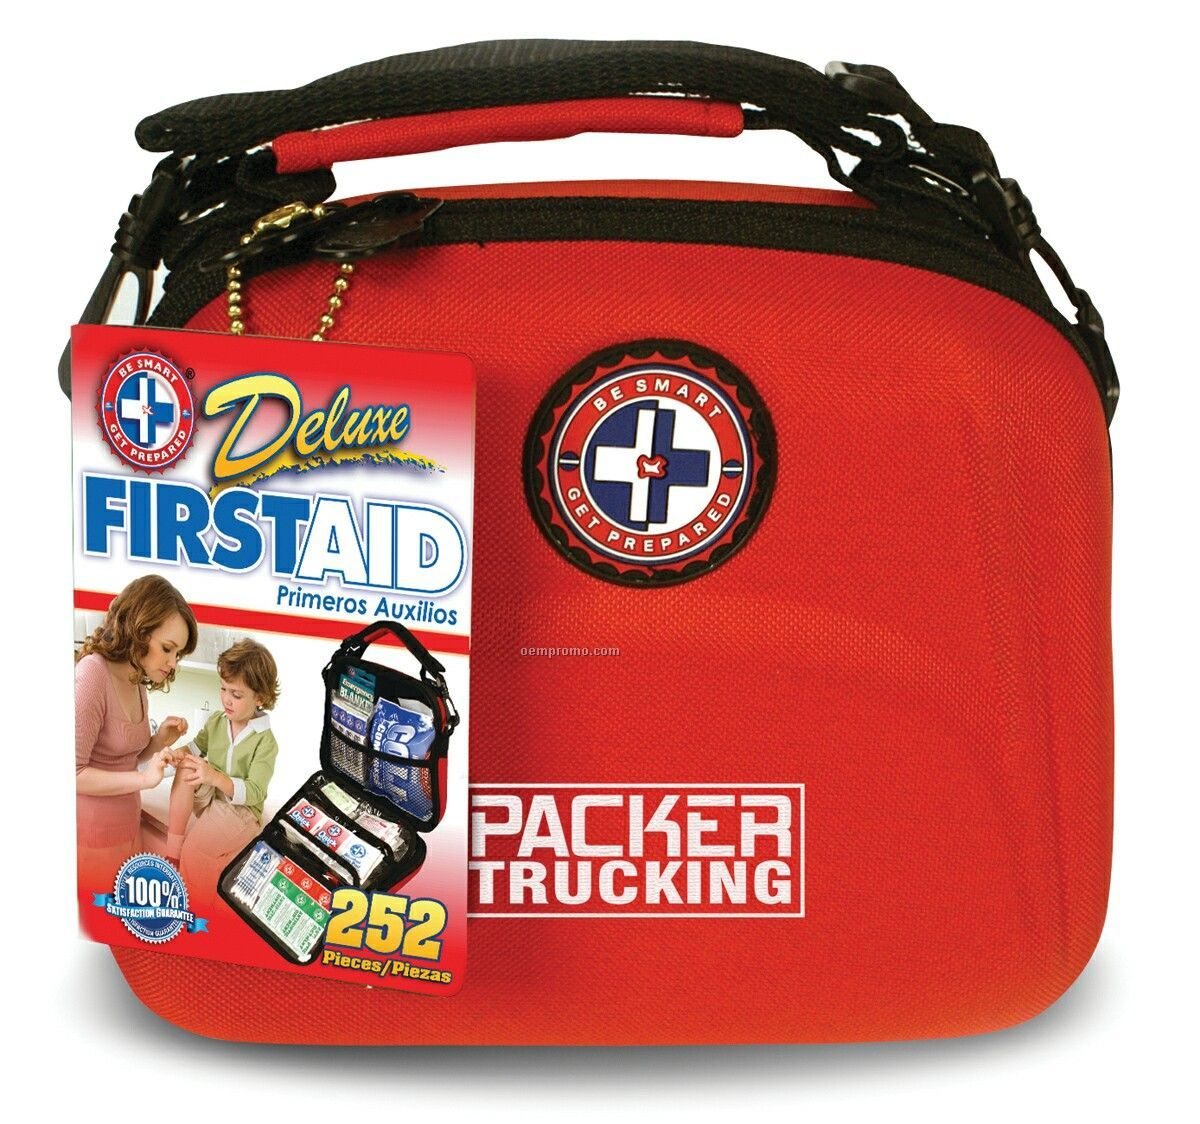 242-piece Outdoor First Aid / Emergency Kit